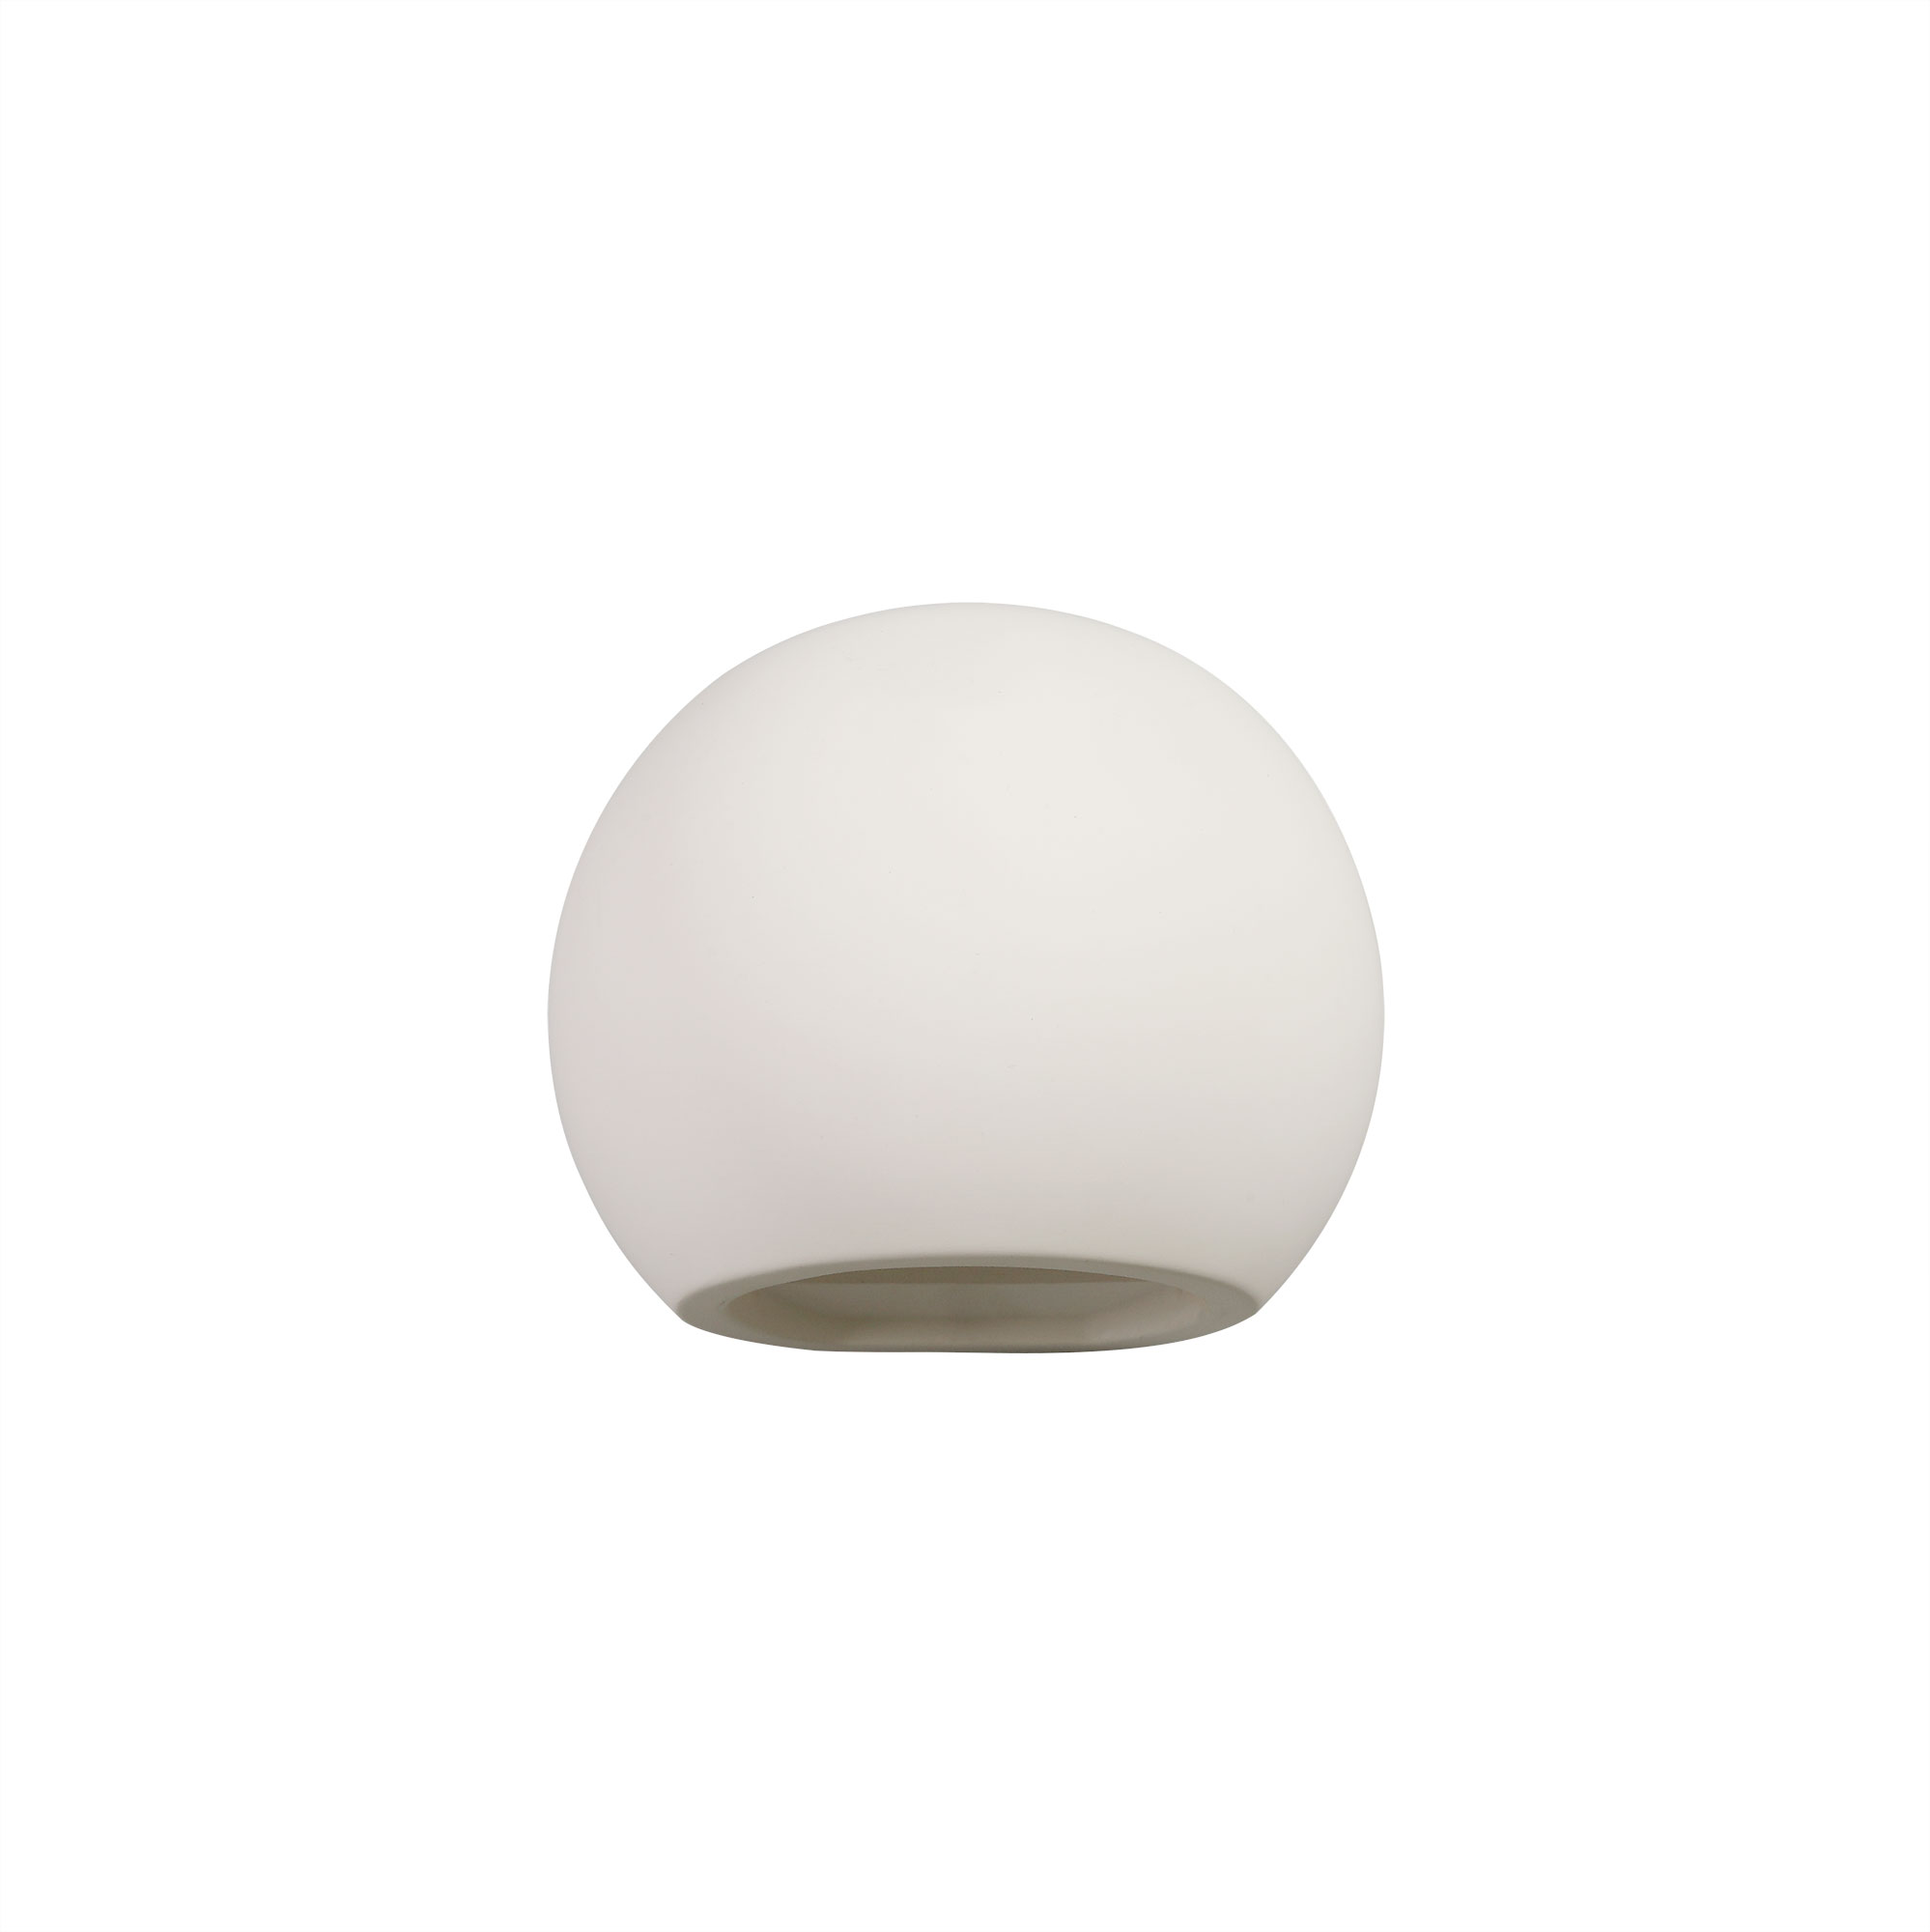 Round Ball Up & Down Wall Lamp, 1 x G9, White Paintable Gypsum